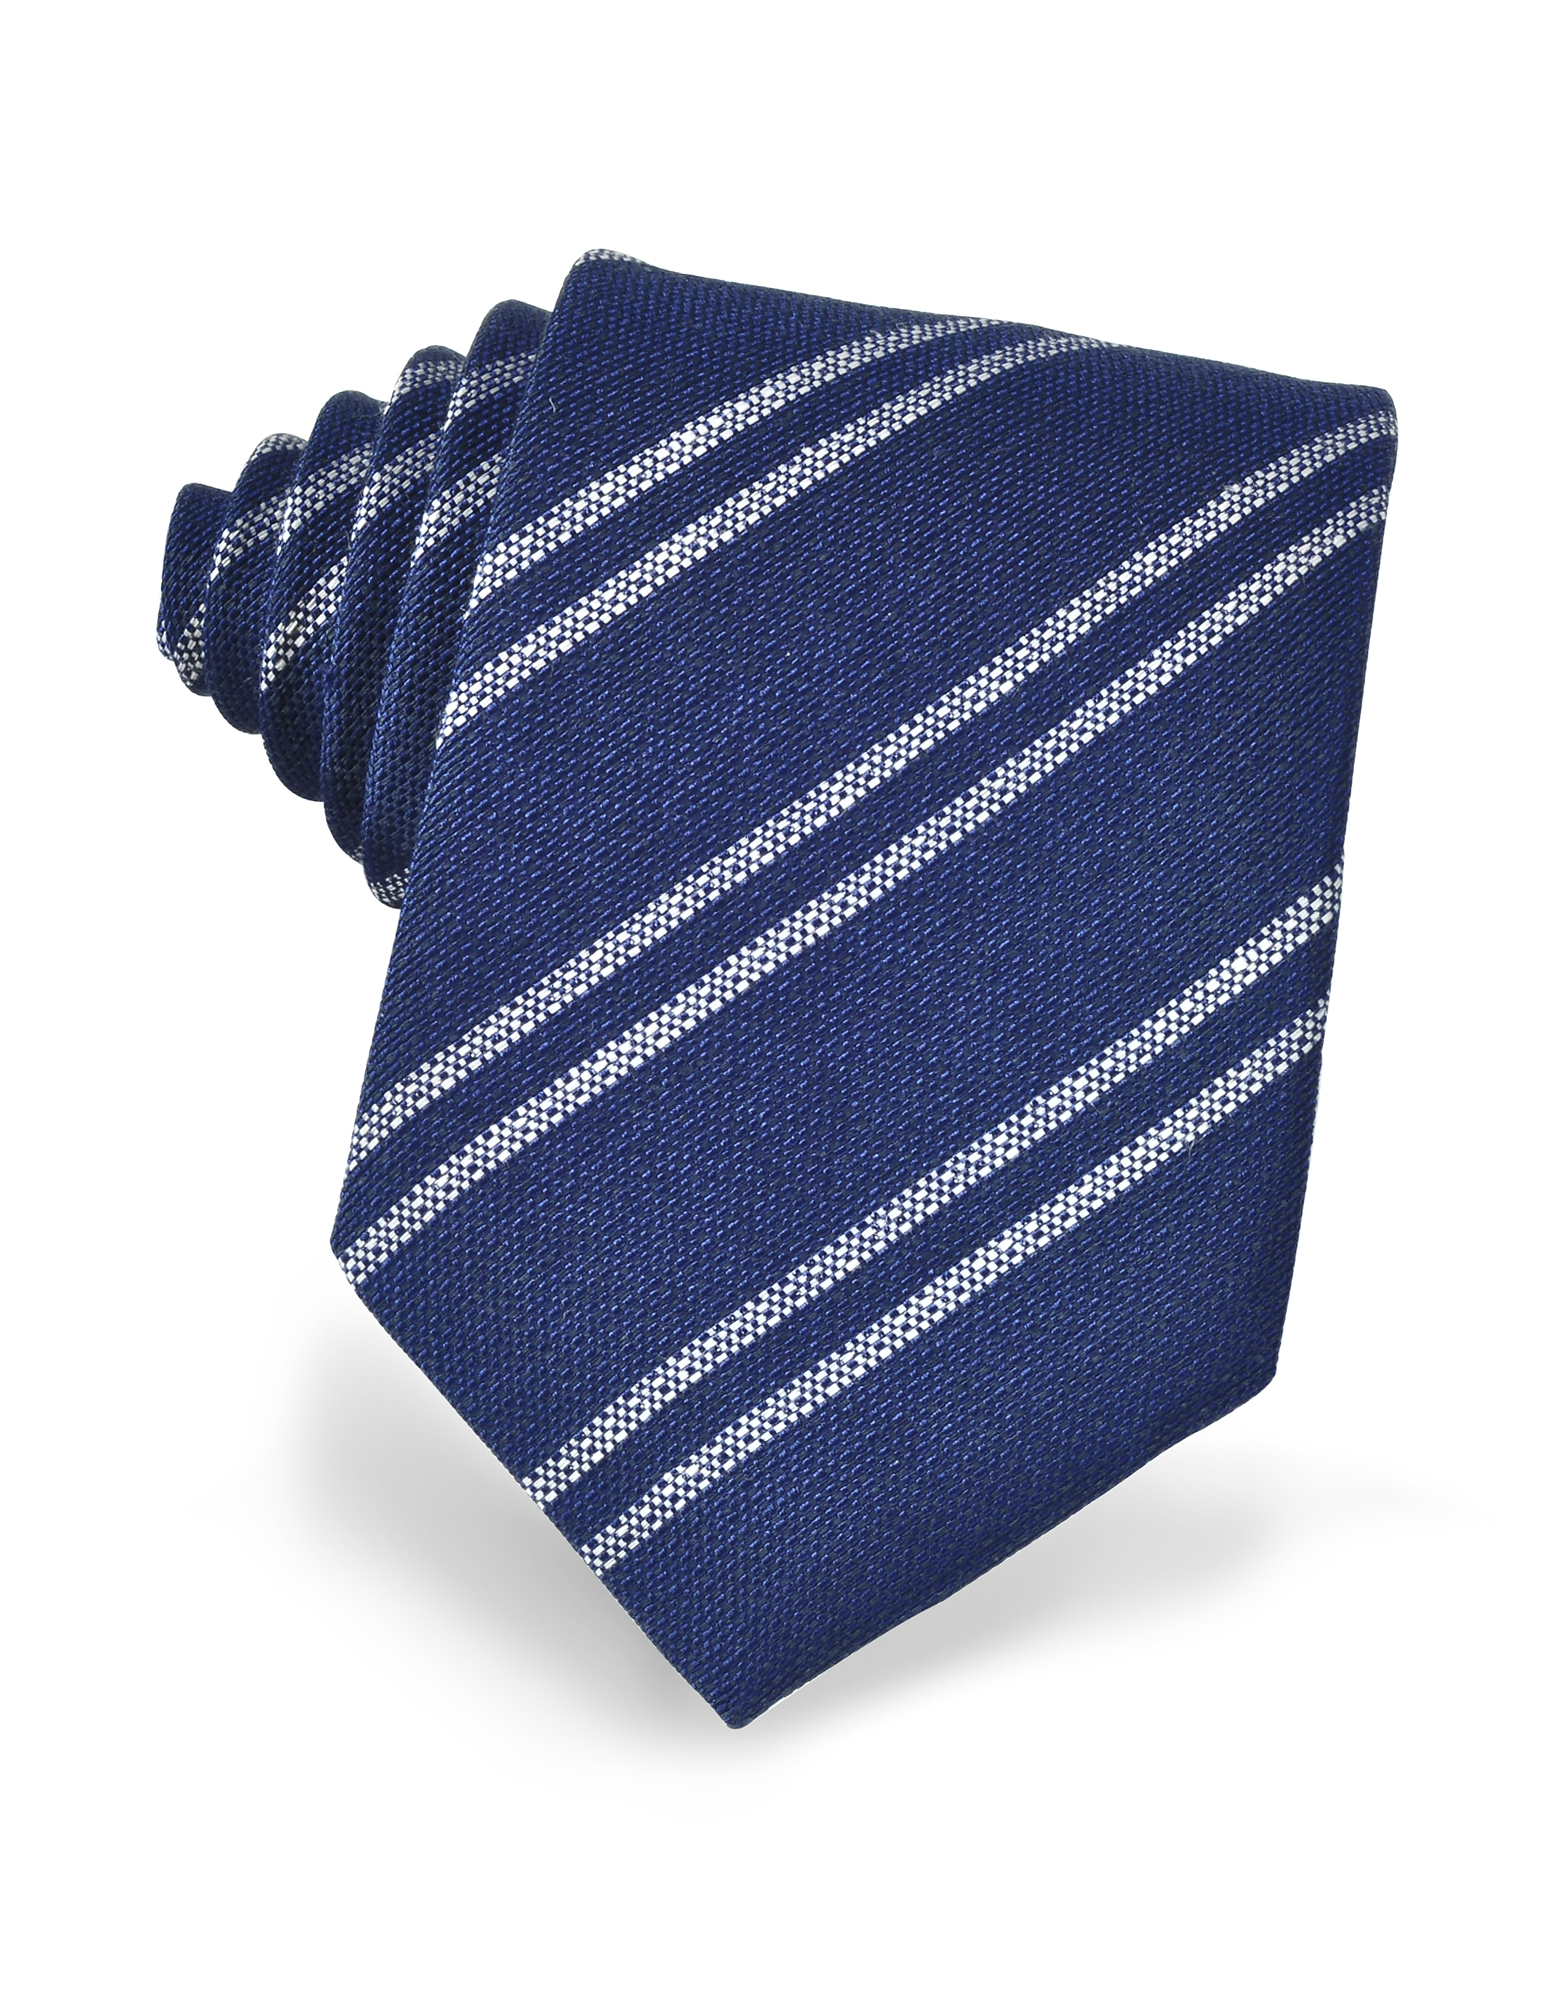 Forzieri Ties, Blue and White Diagonal Striped Woven Silk Tie